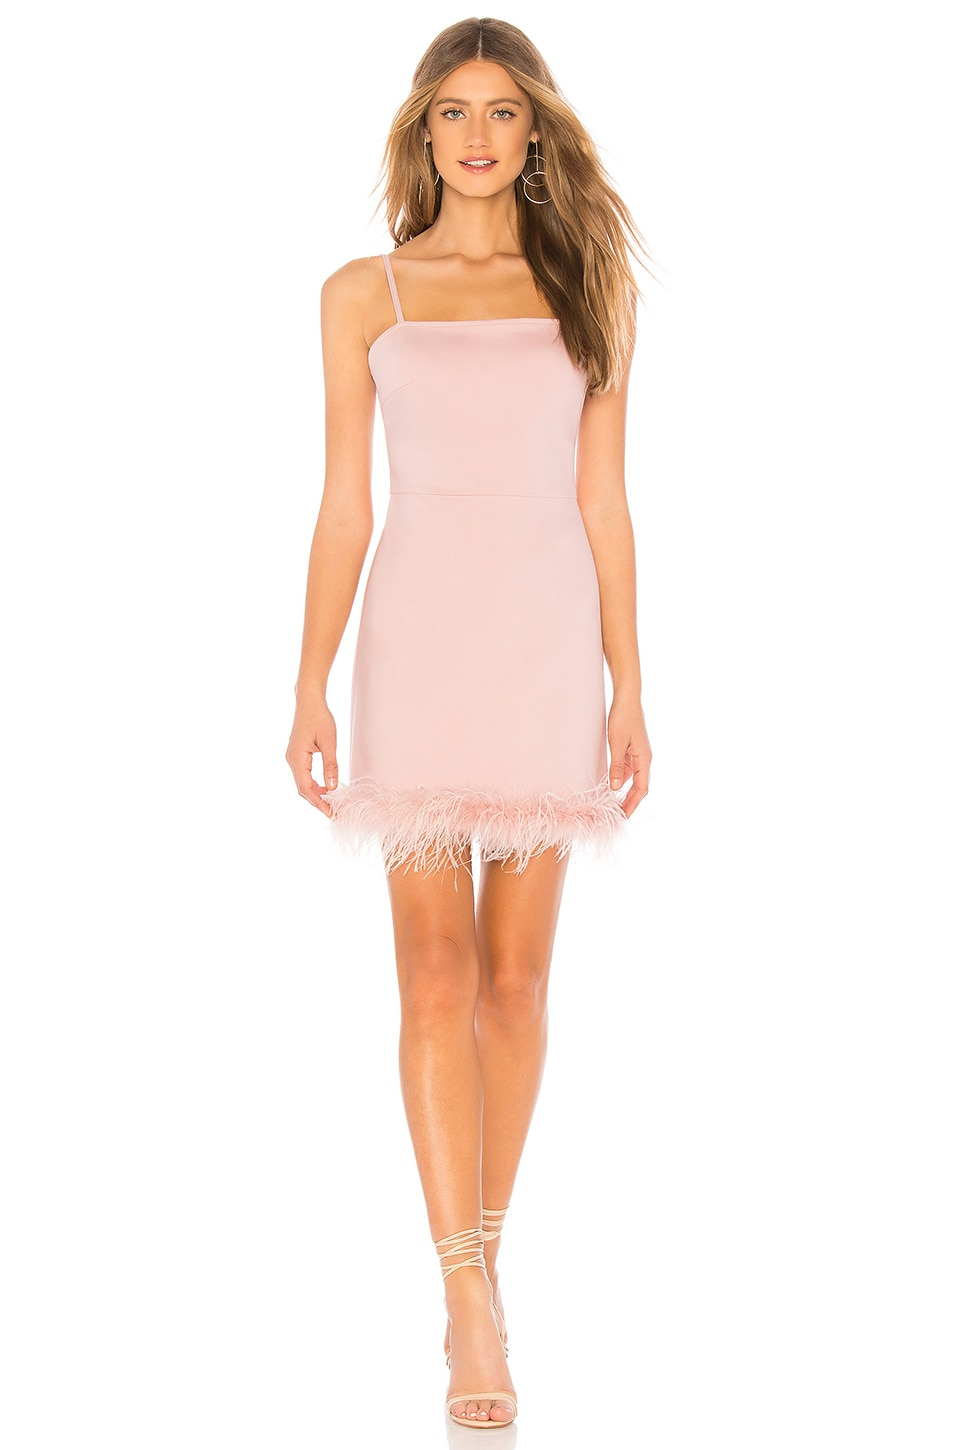 ABOUT US KATE FEATHER BOTTOM DRESS